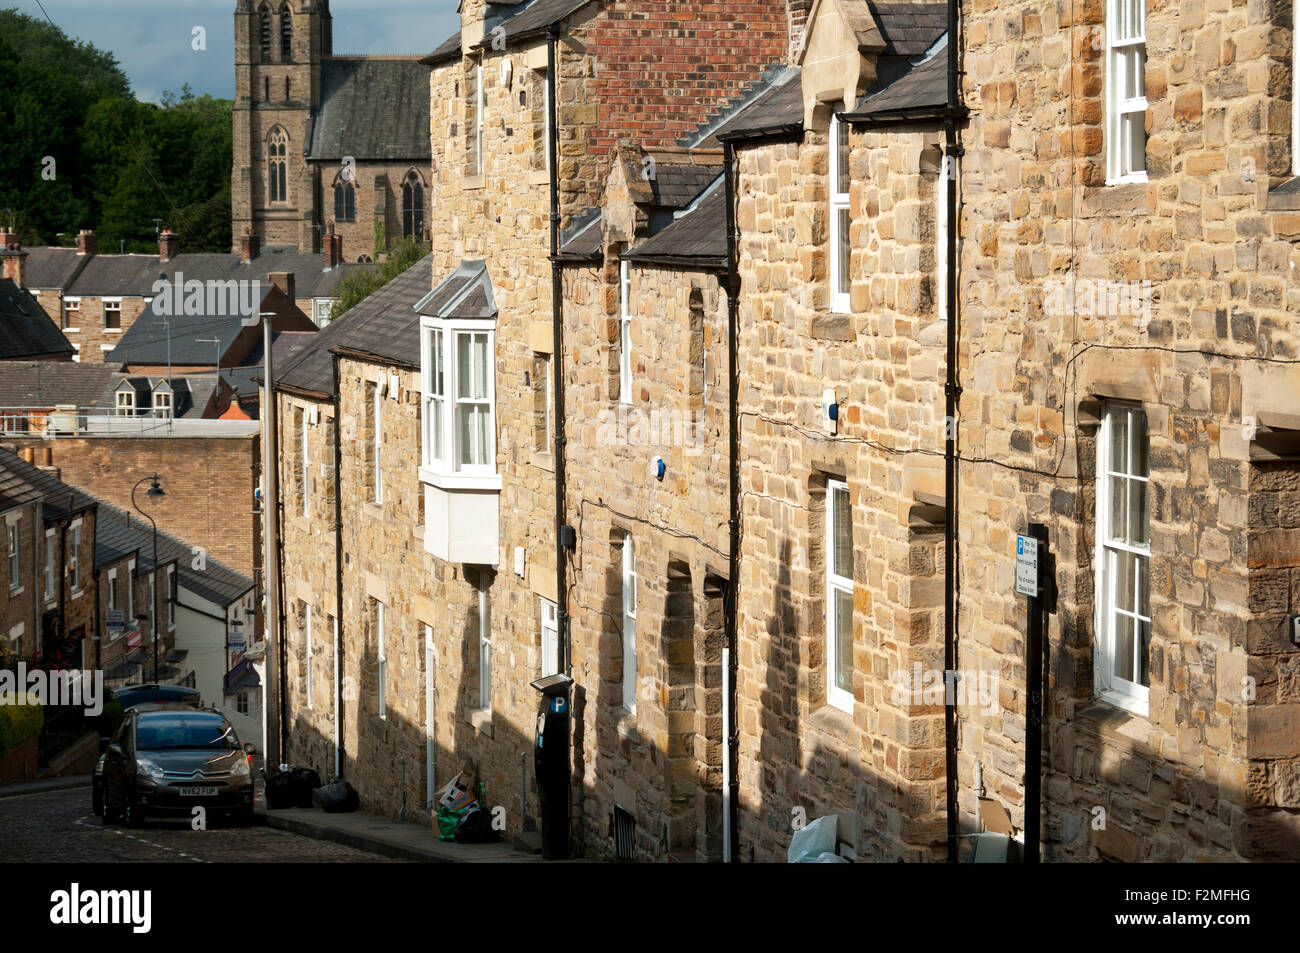 Stone Built Terraced Houses On A Steeply Sloping Street, Neville Street,  Durham City, England, UK